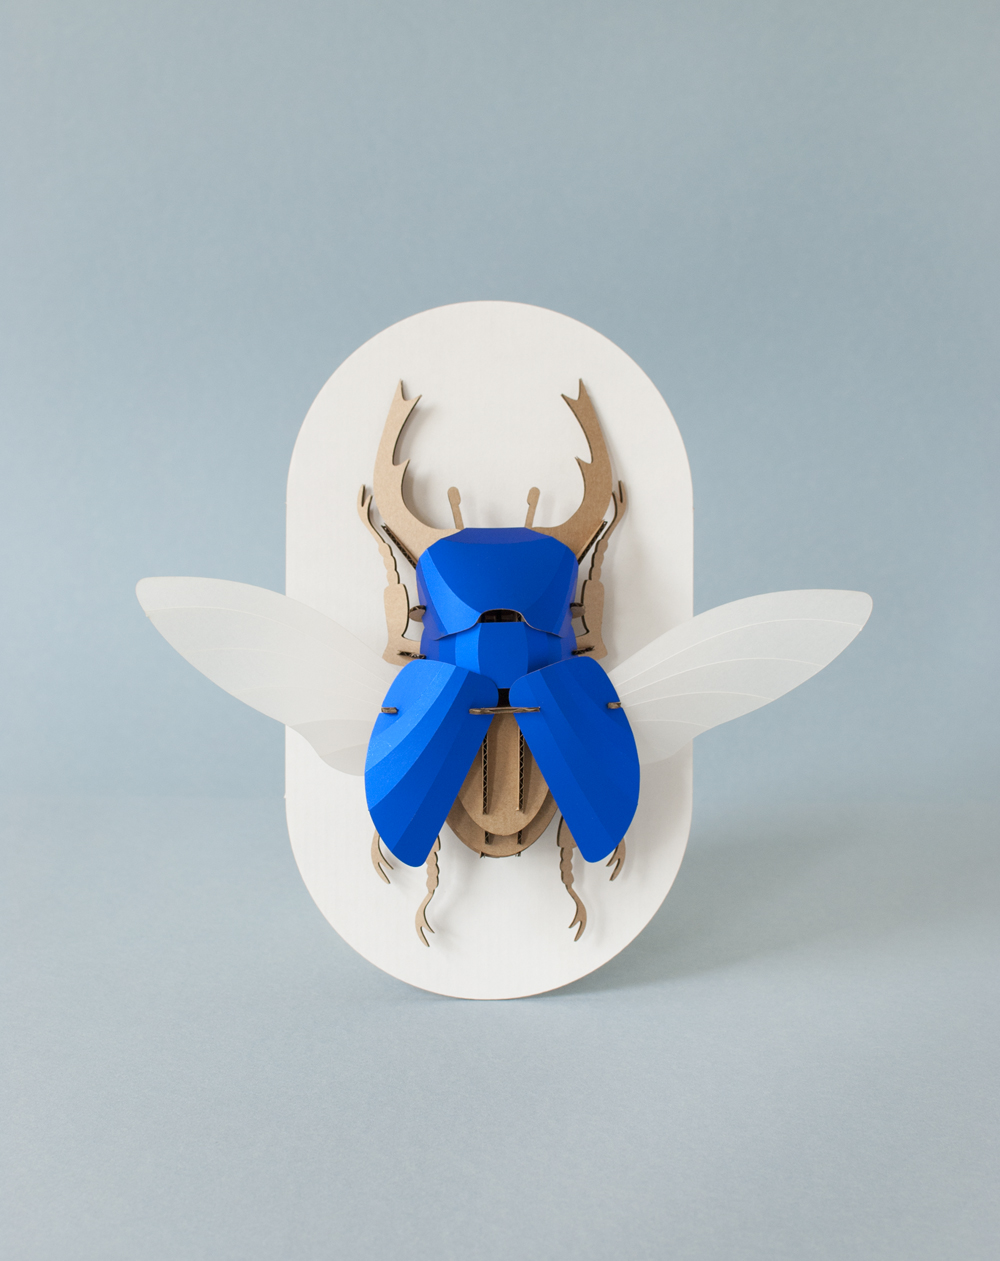 DIY Paper Beetle Sculpture Kits by Assembli - Stag Interior